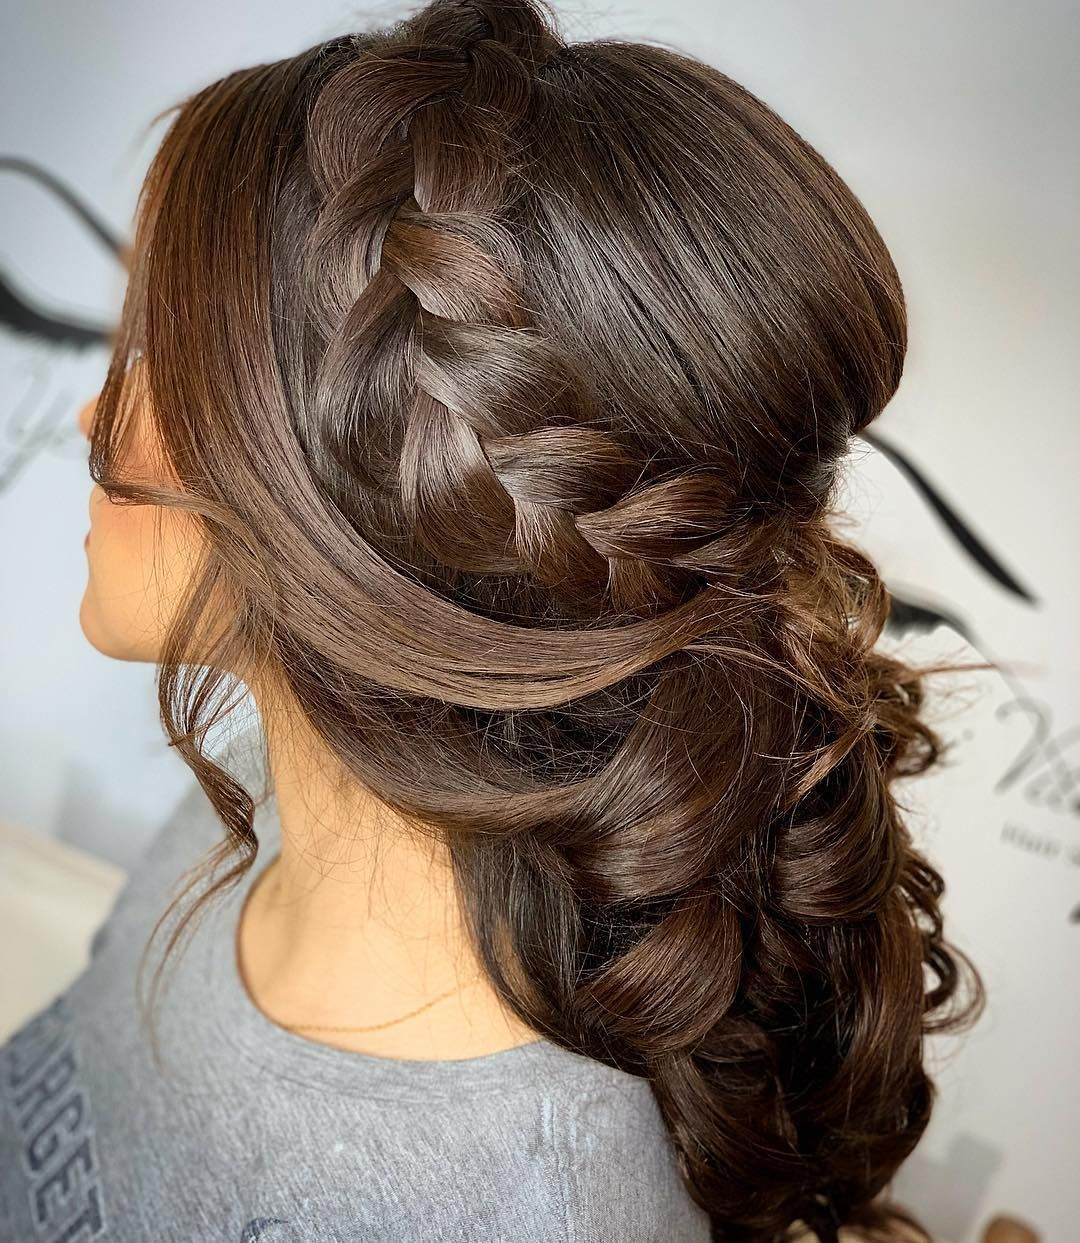 6 Popular Hairstyle Ideas For Quinceaneras In 2020 Quinceanera Hairstyles Quince Hairstyles Hair Styles